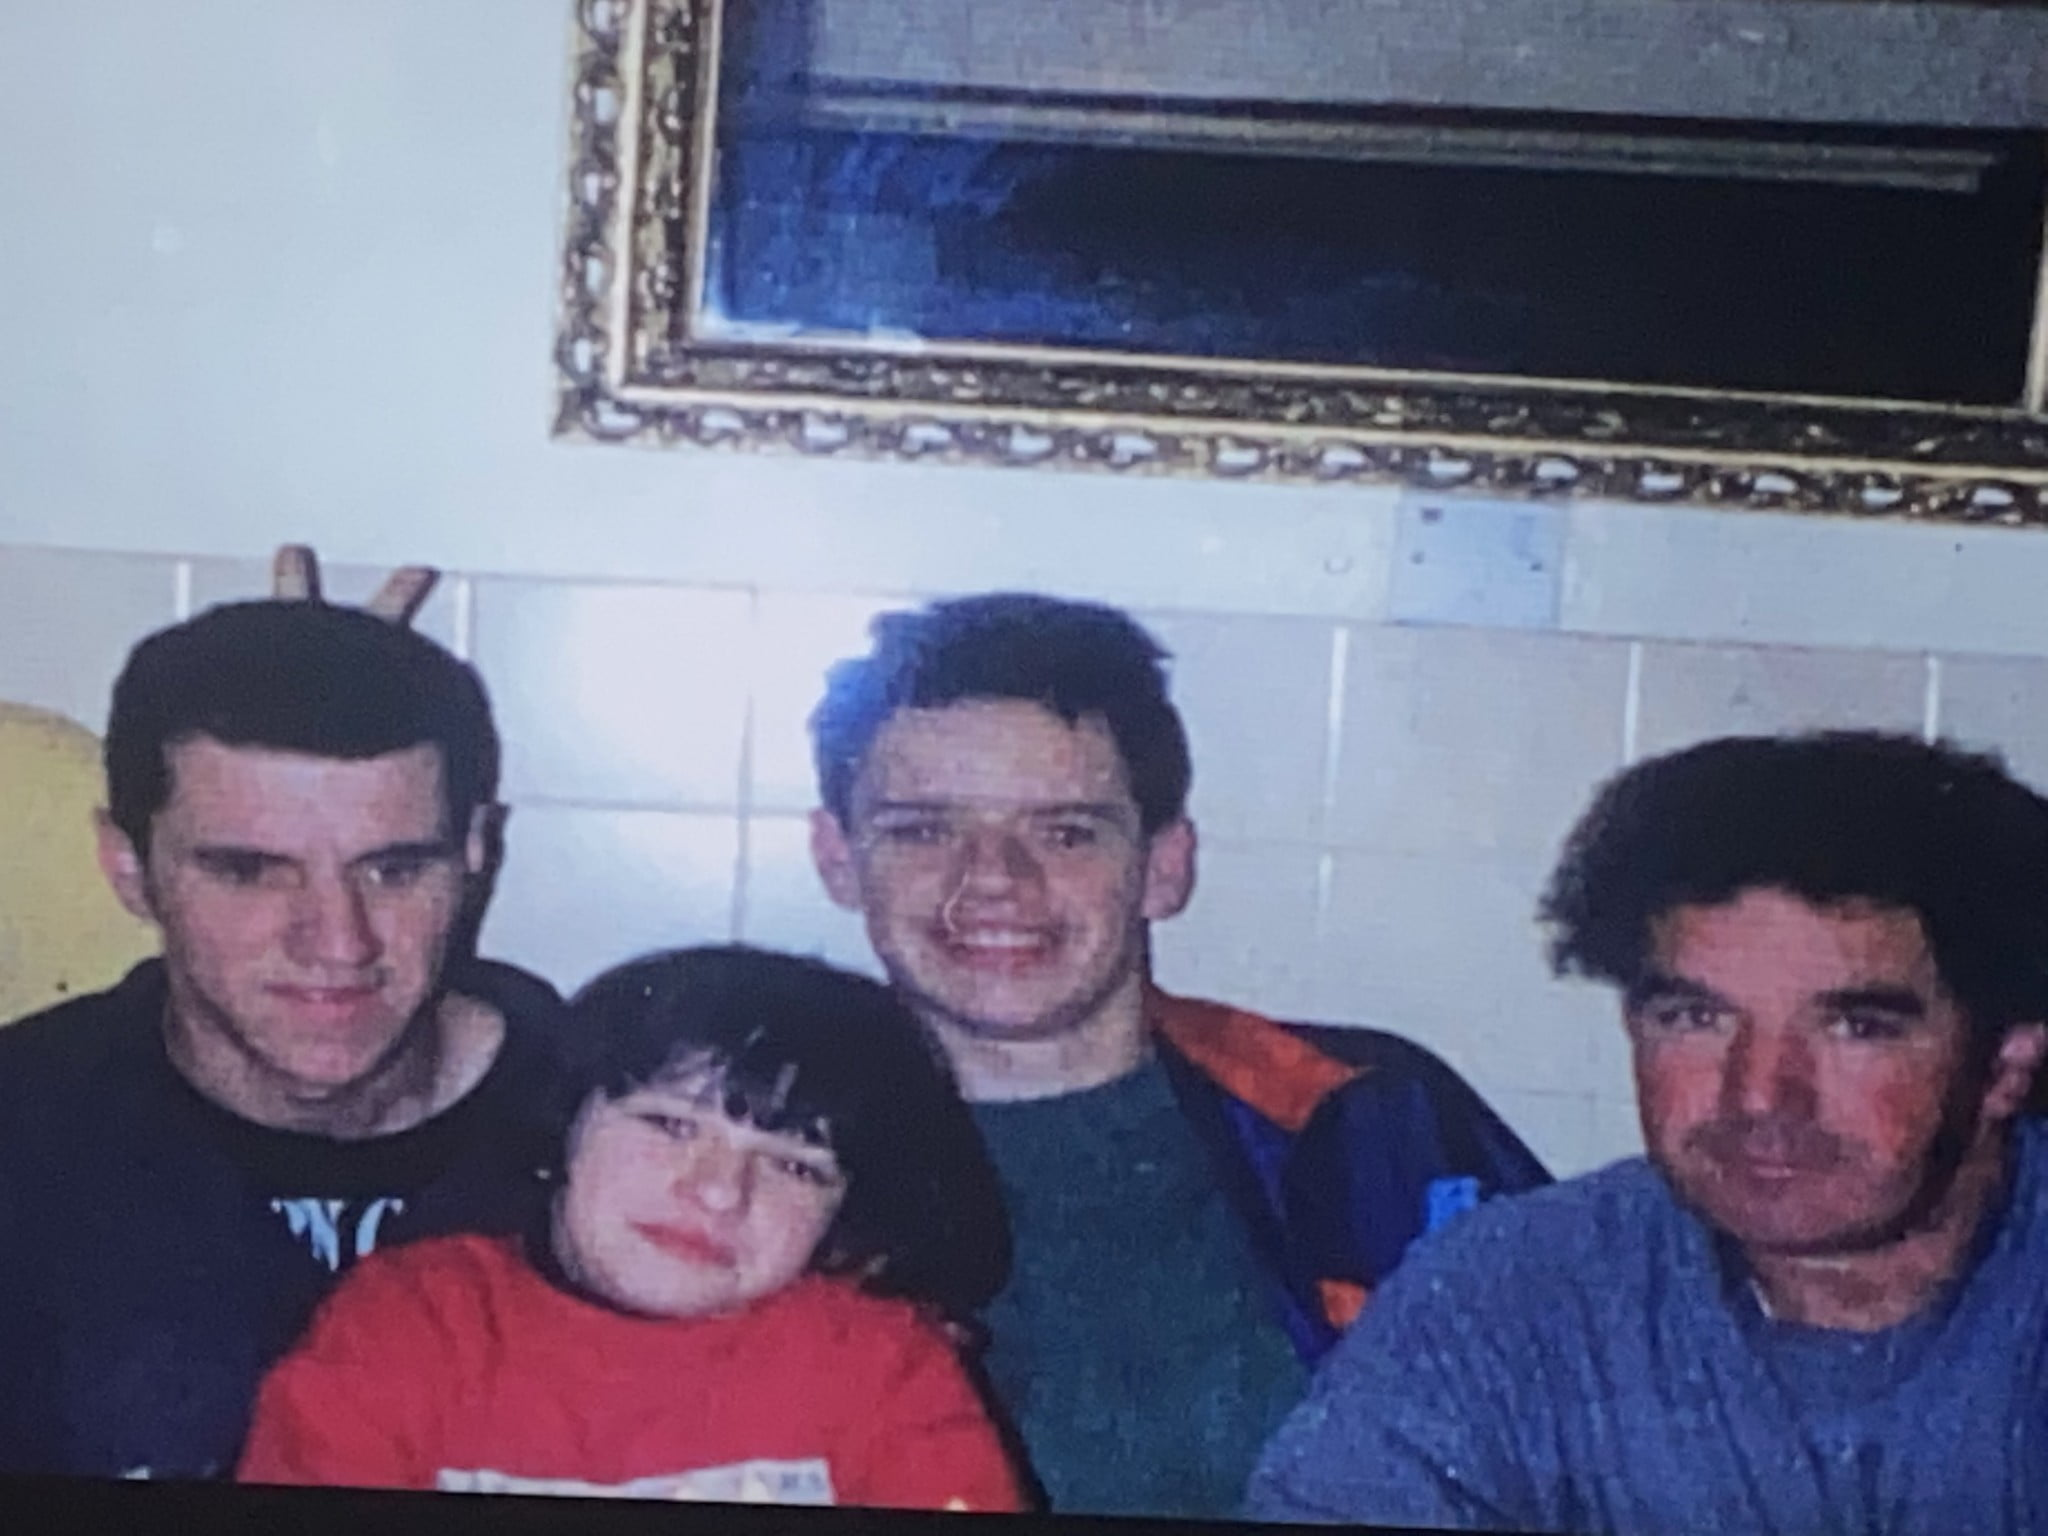 Gerard (22) and Rory Cairns (18) a couple of hours before they were shot, with their dad Eamon and sister Róisín who was celebrating her 11th birthday that day